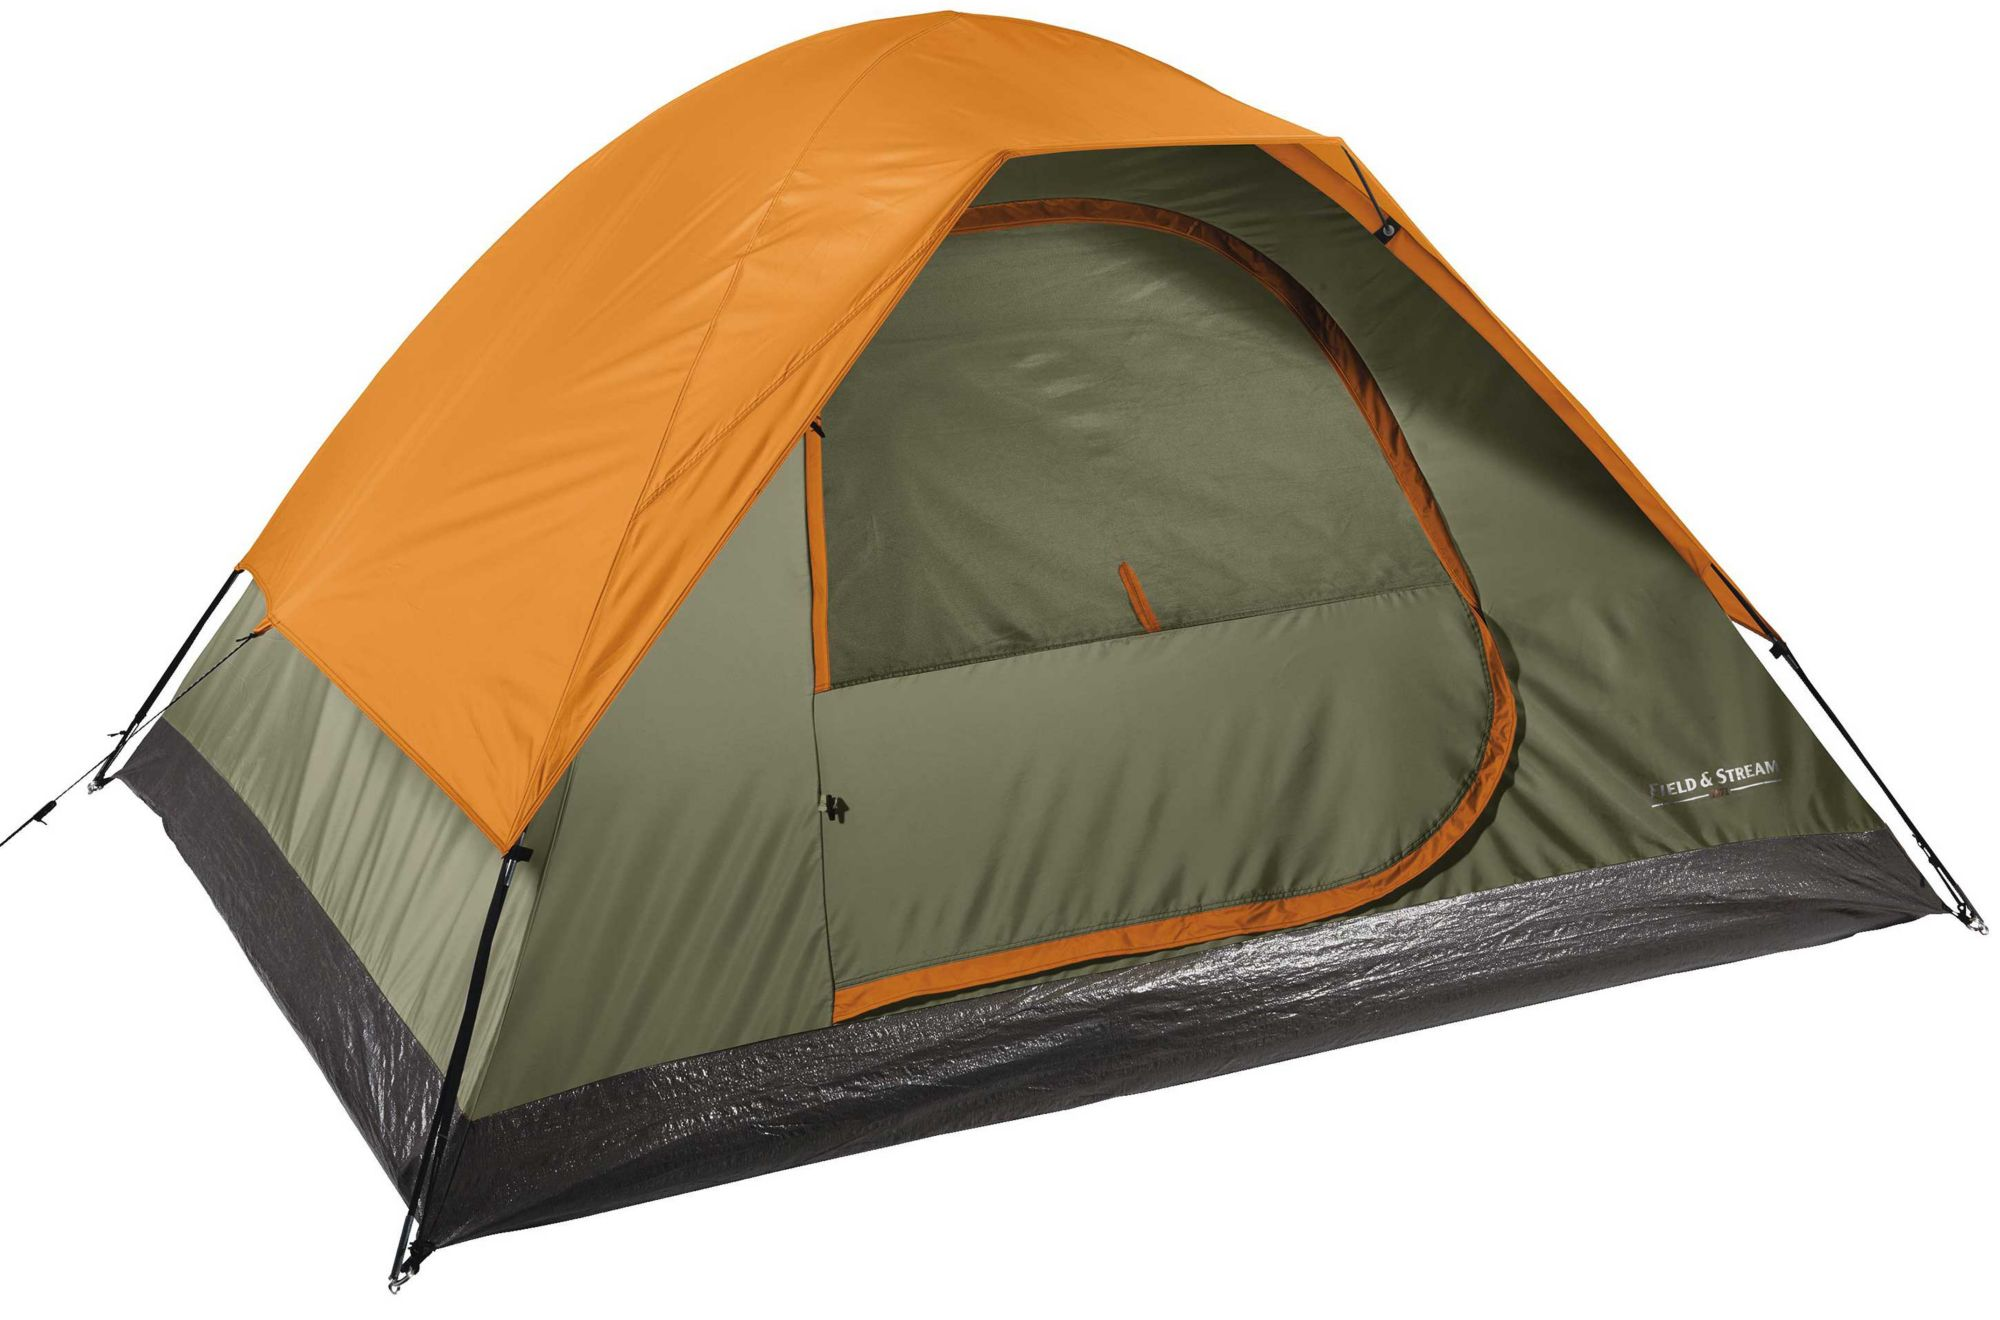 Field  Stream 3 Person Dome Tent  Dicks Sporting Goods-5485